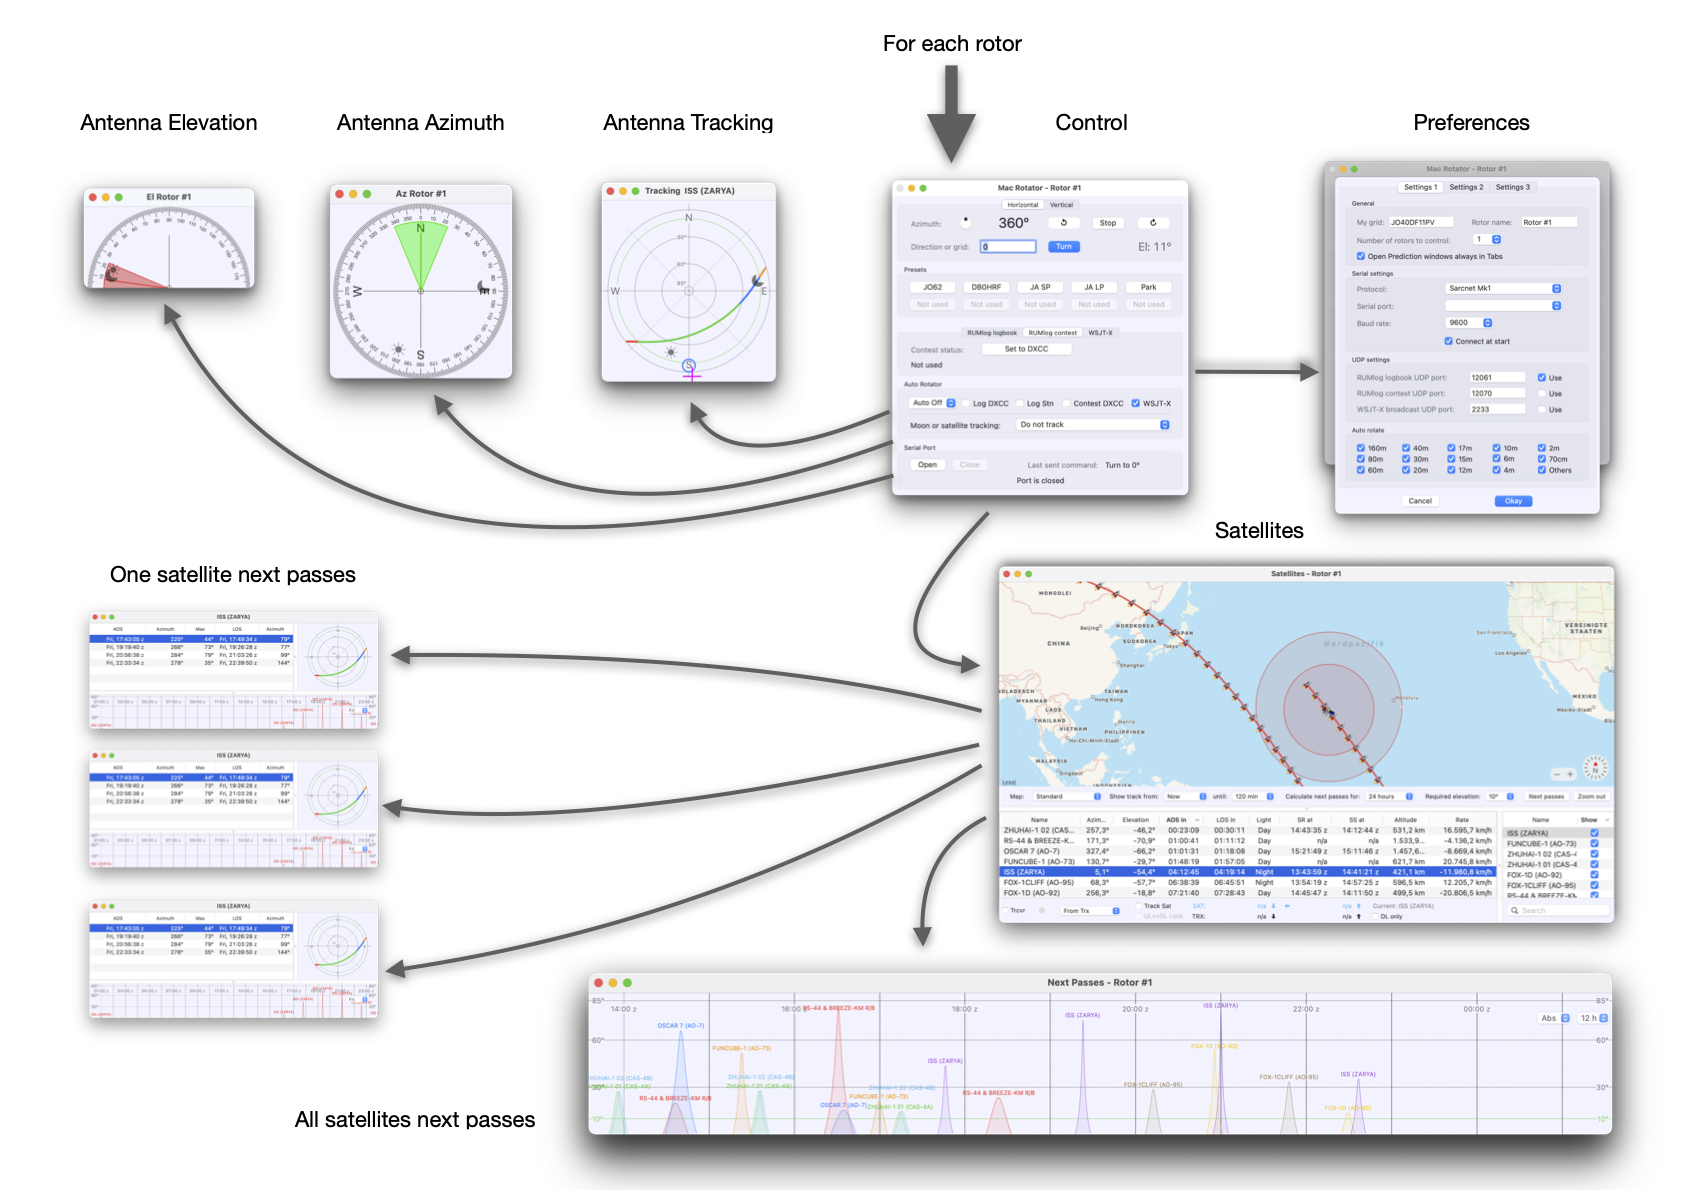 Introducing Rotor –  a full-featured antenna rotor control app for macOS